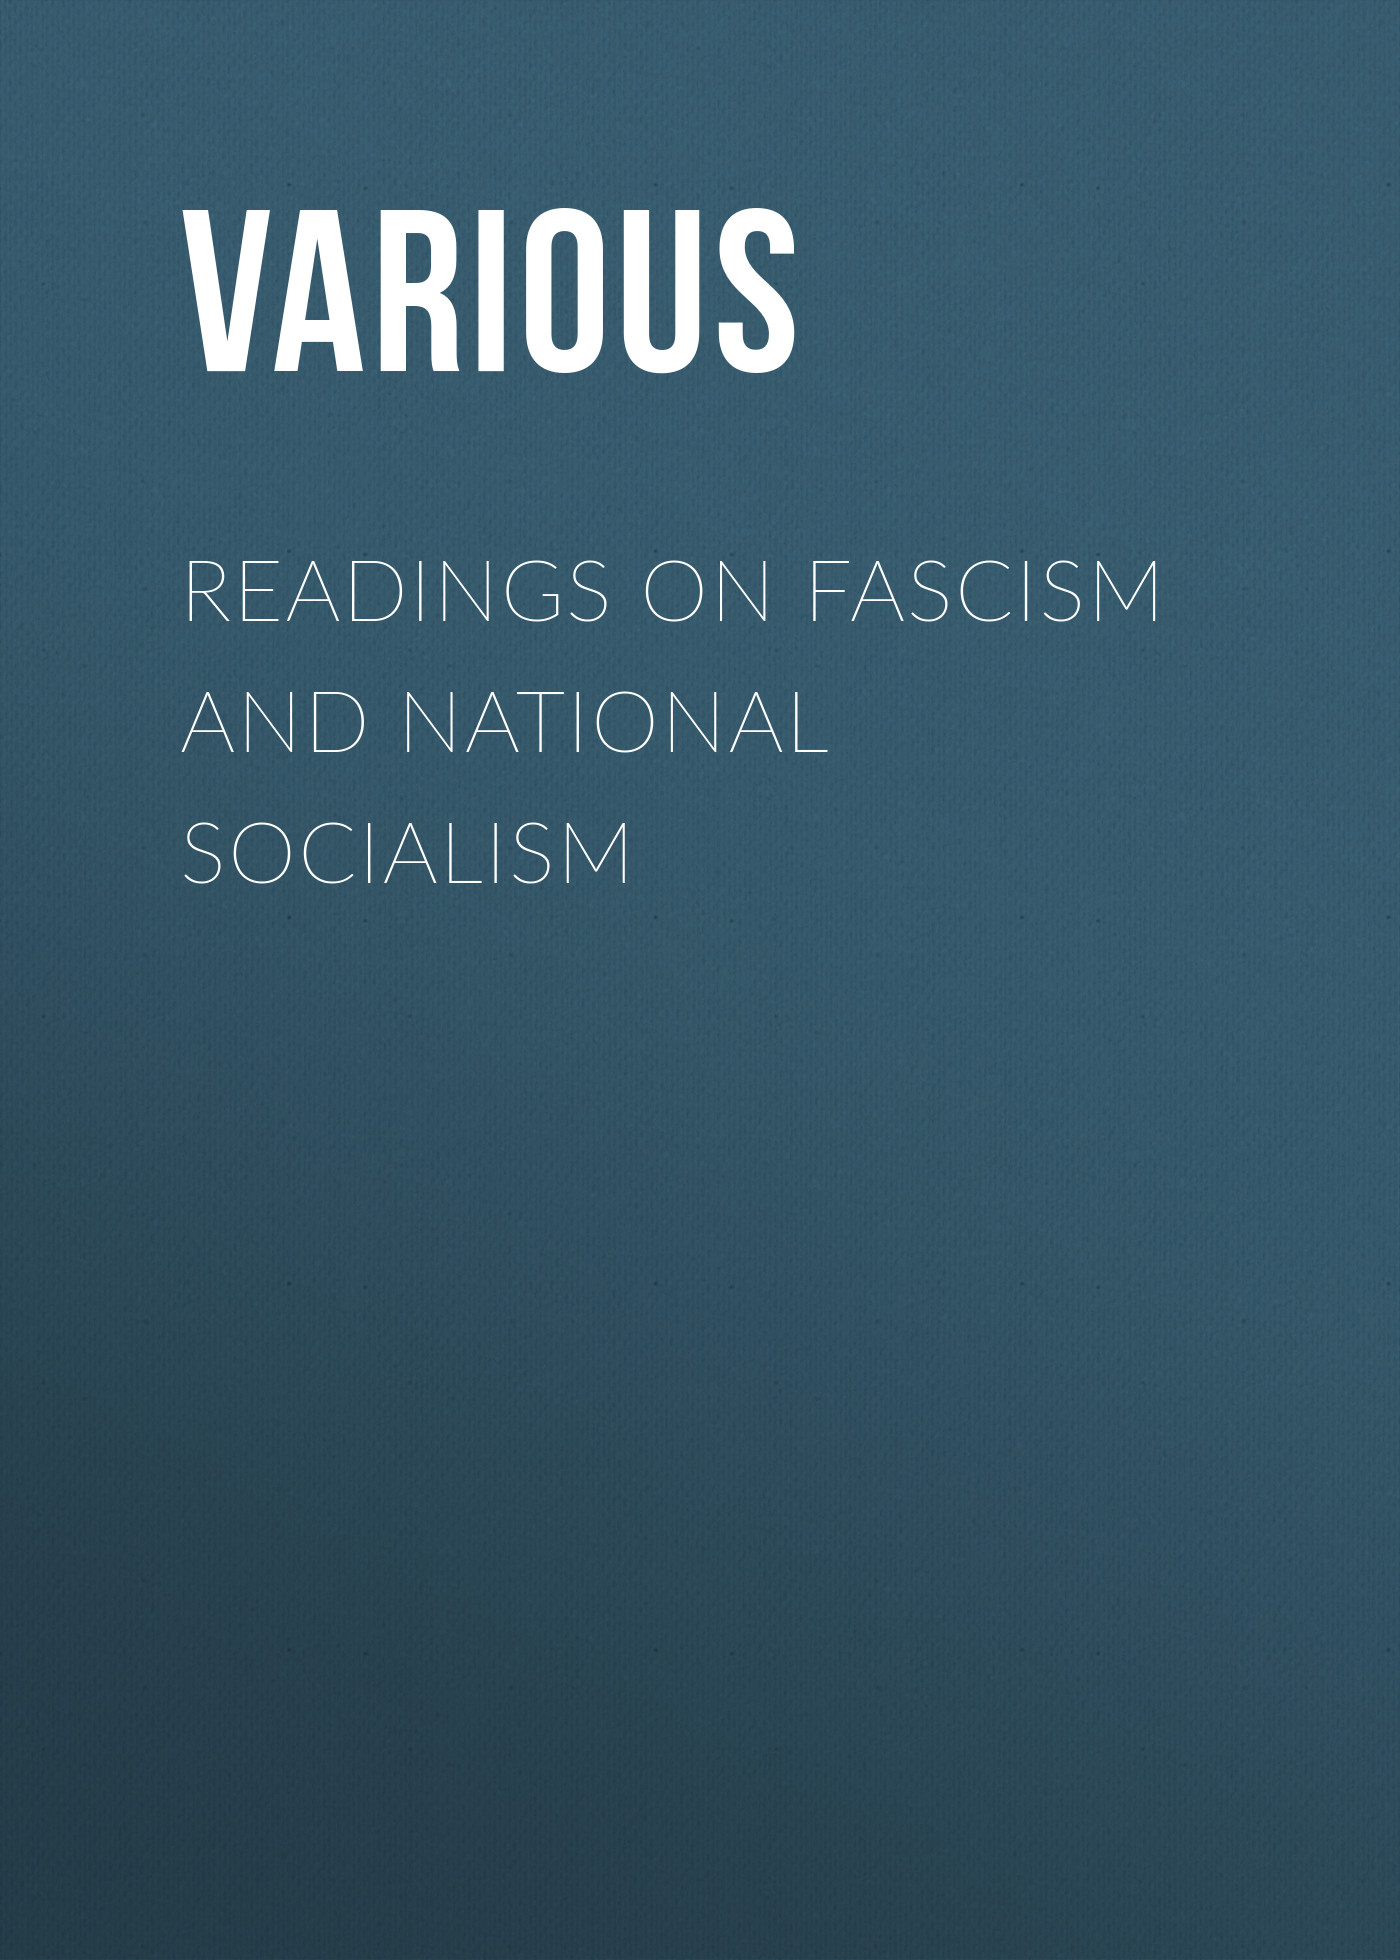 Various Readings on Fascism and National Socialism sallie mcfague sallie mcfague collected readings